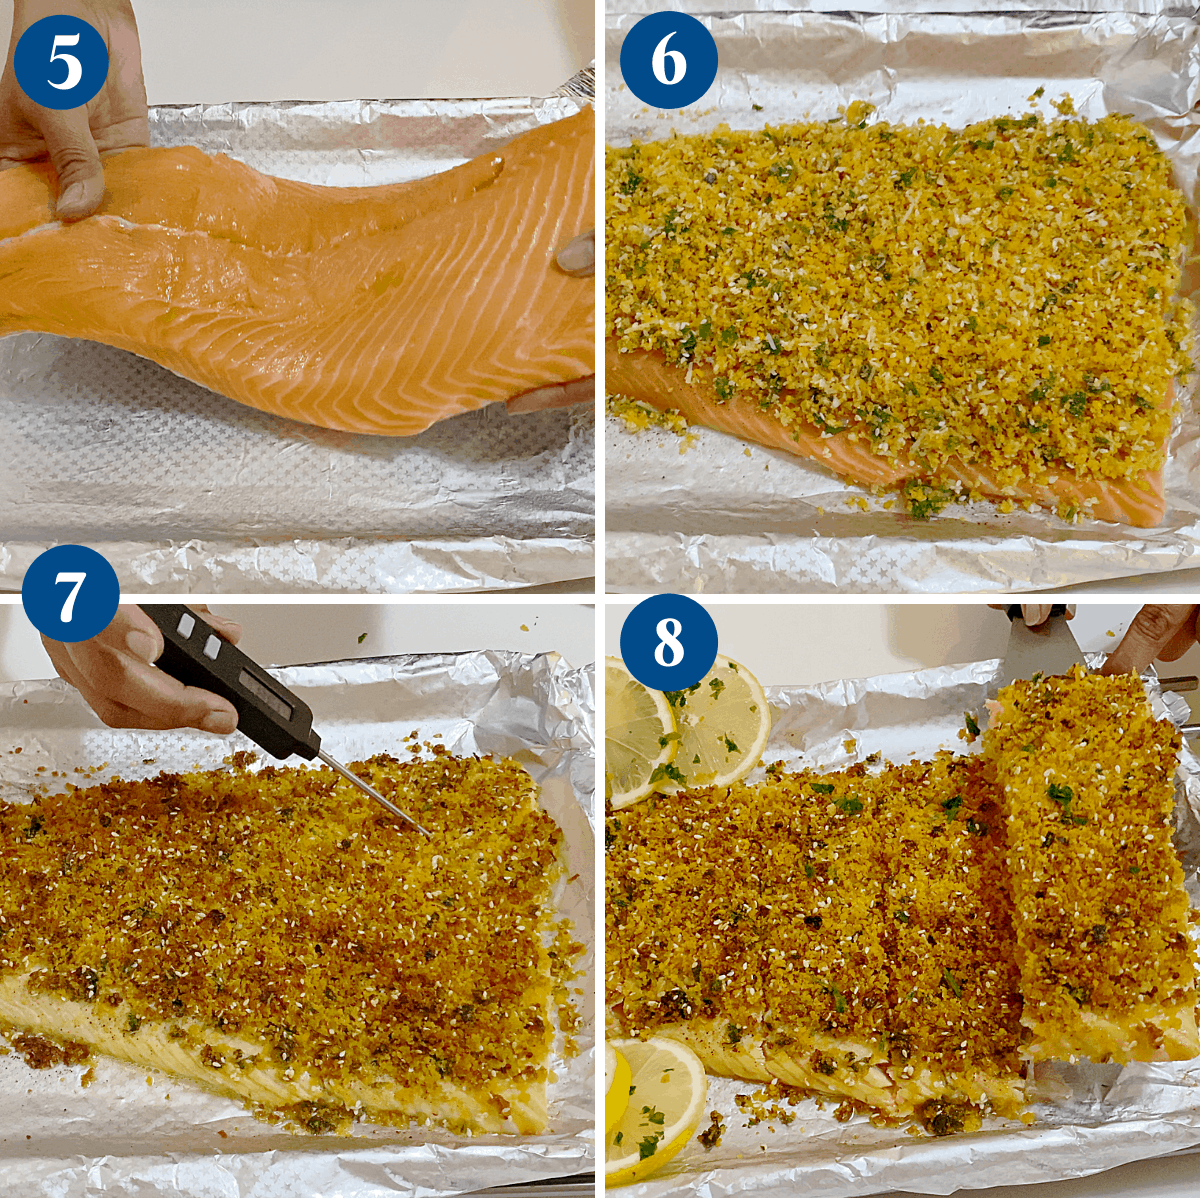 Progress pictures baking the salmon with parmesan.